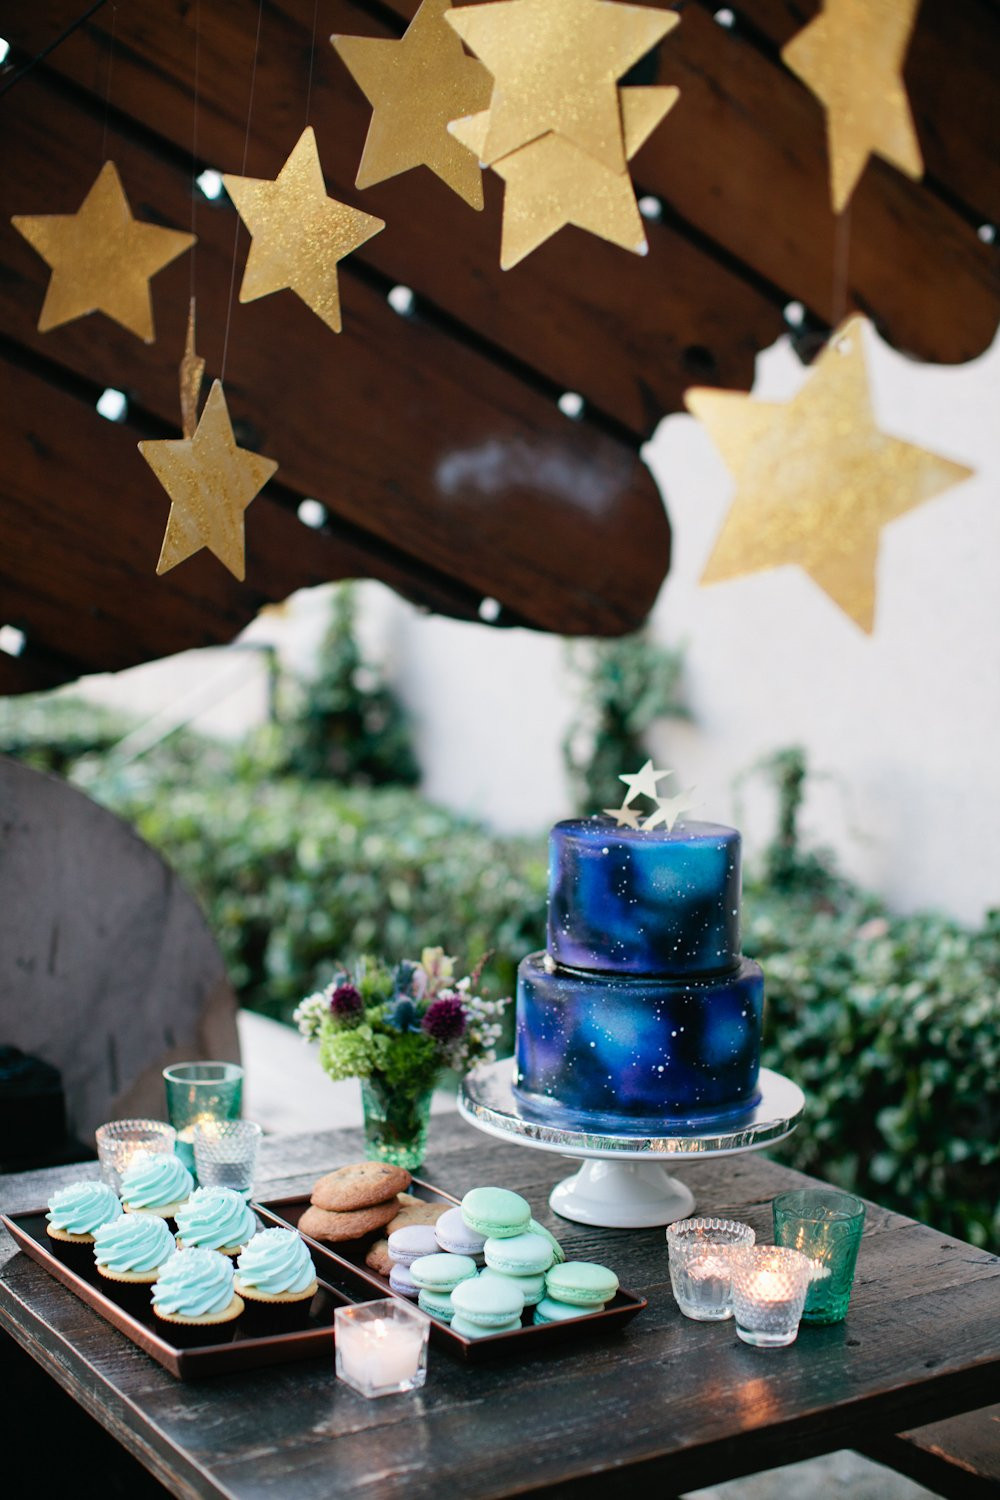 Baby Shower Dessert Table For Boy  7 Twinkly Inspirations for a Wish Upon A Star Baby Shower